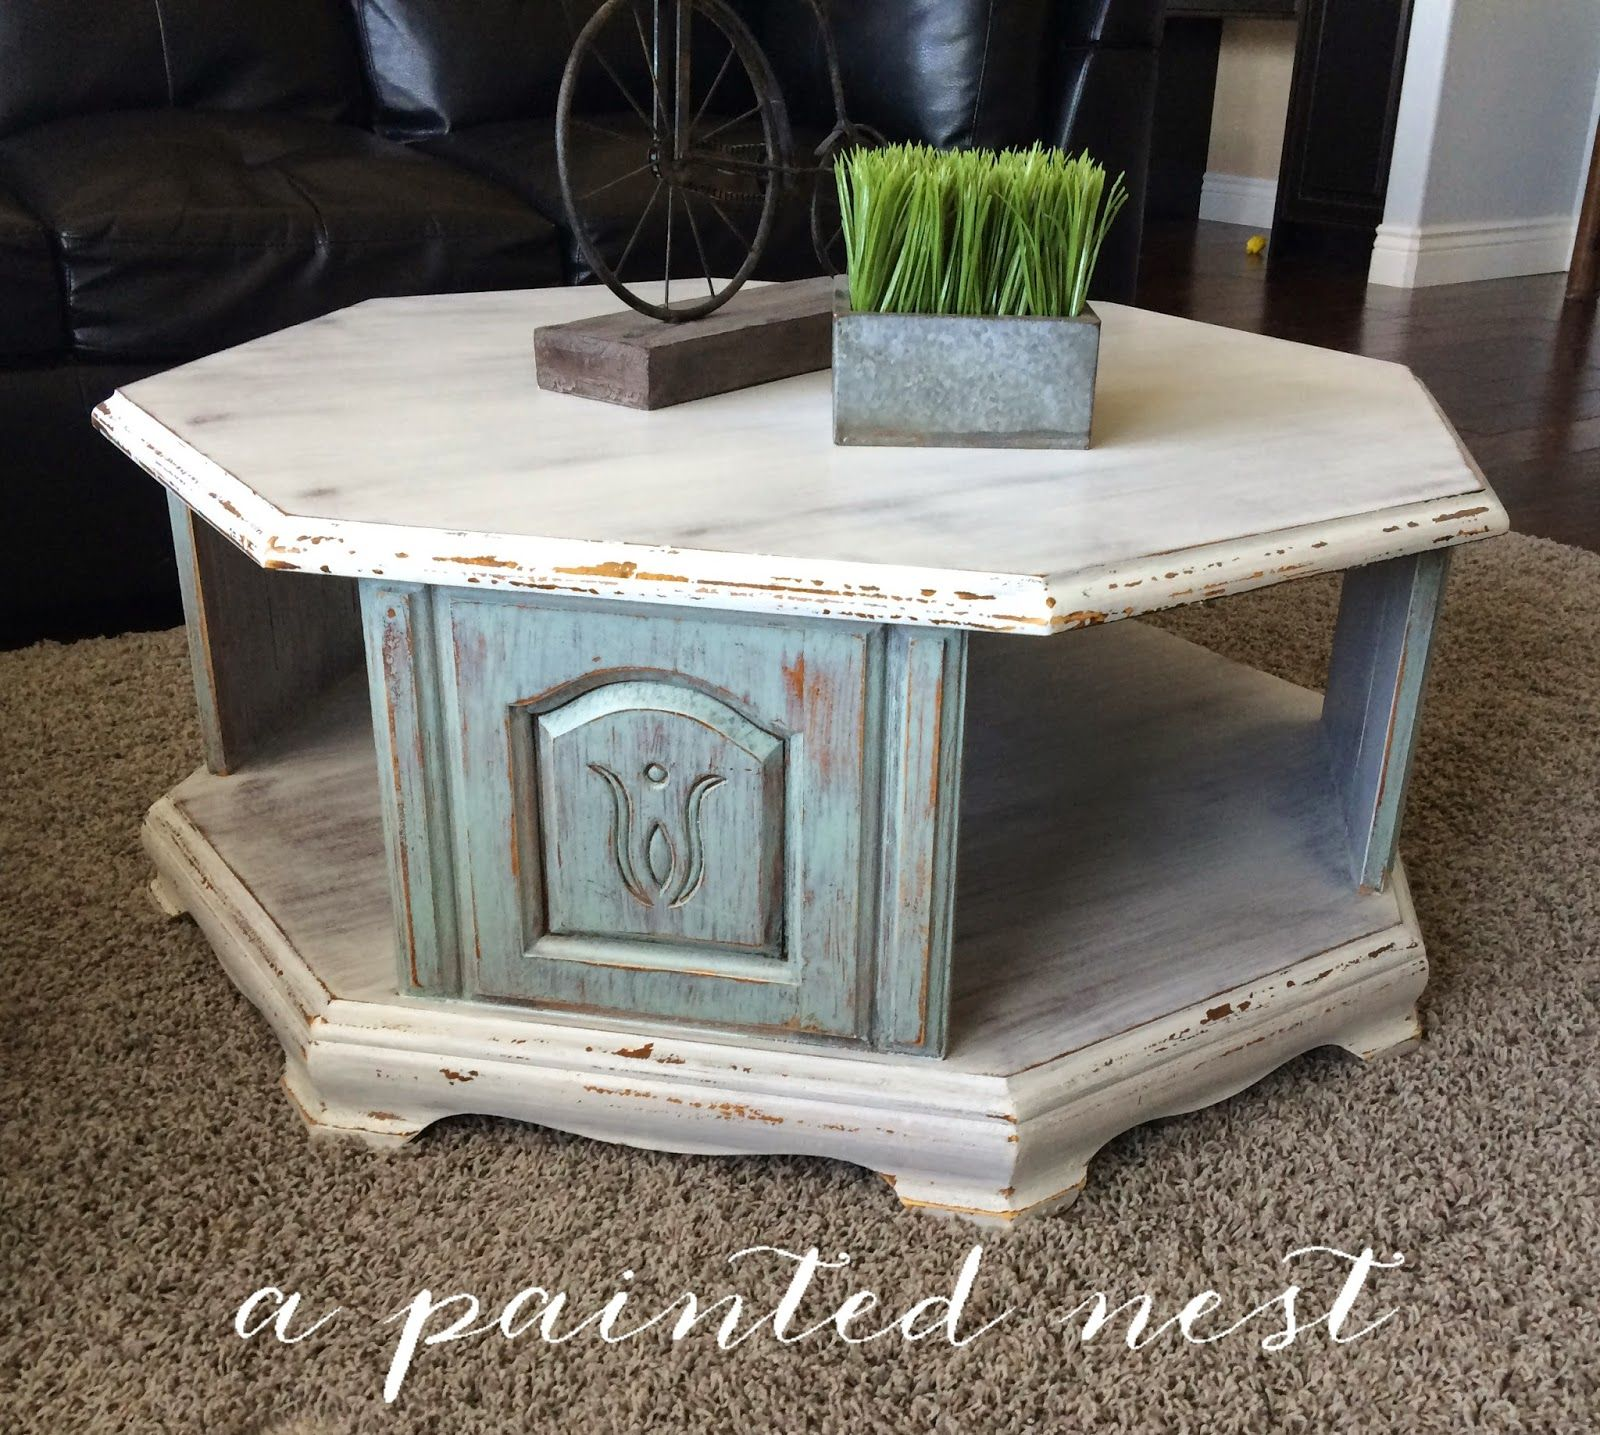 Octagon coffee table for sale from A Painted Nest